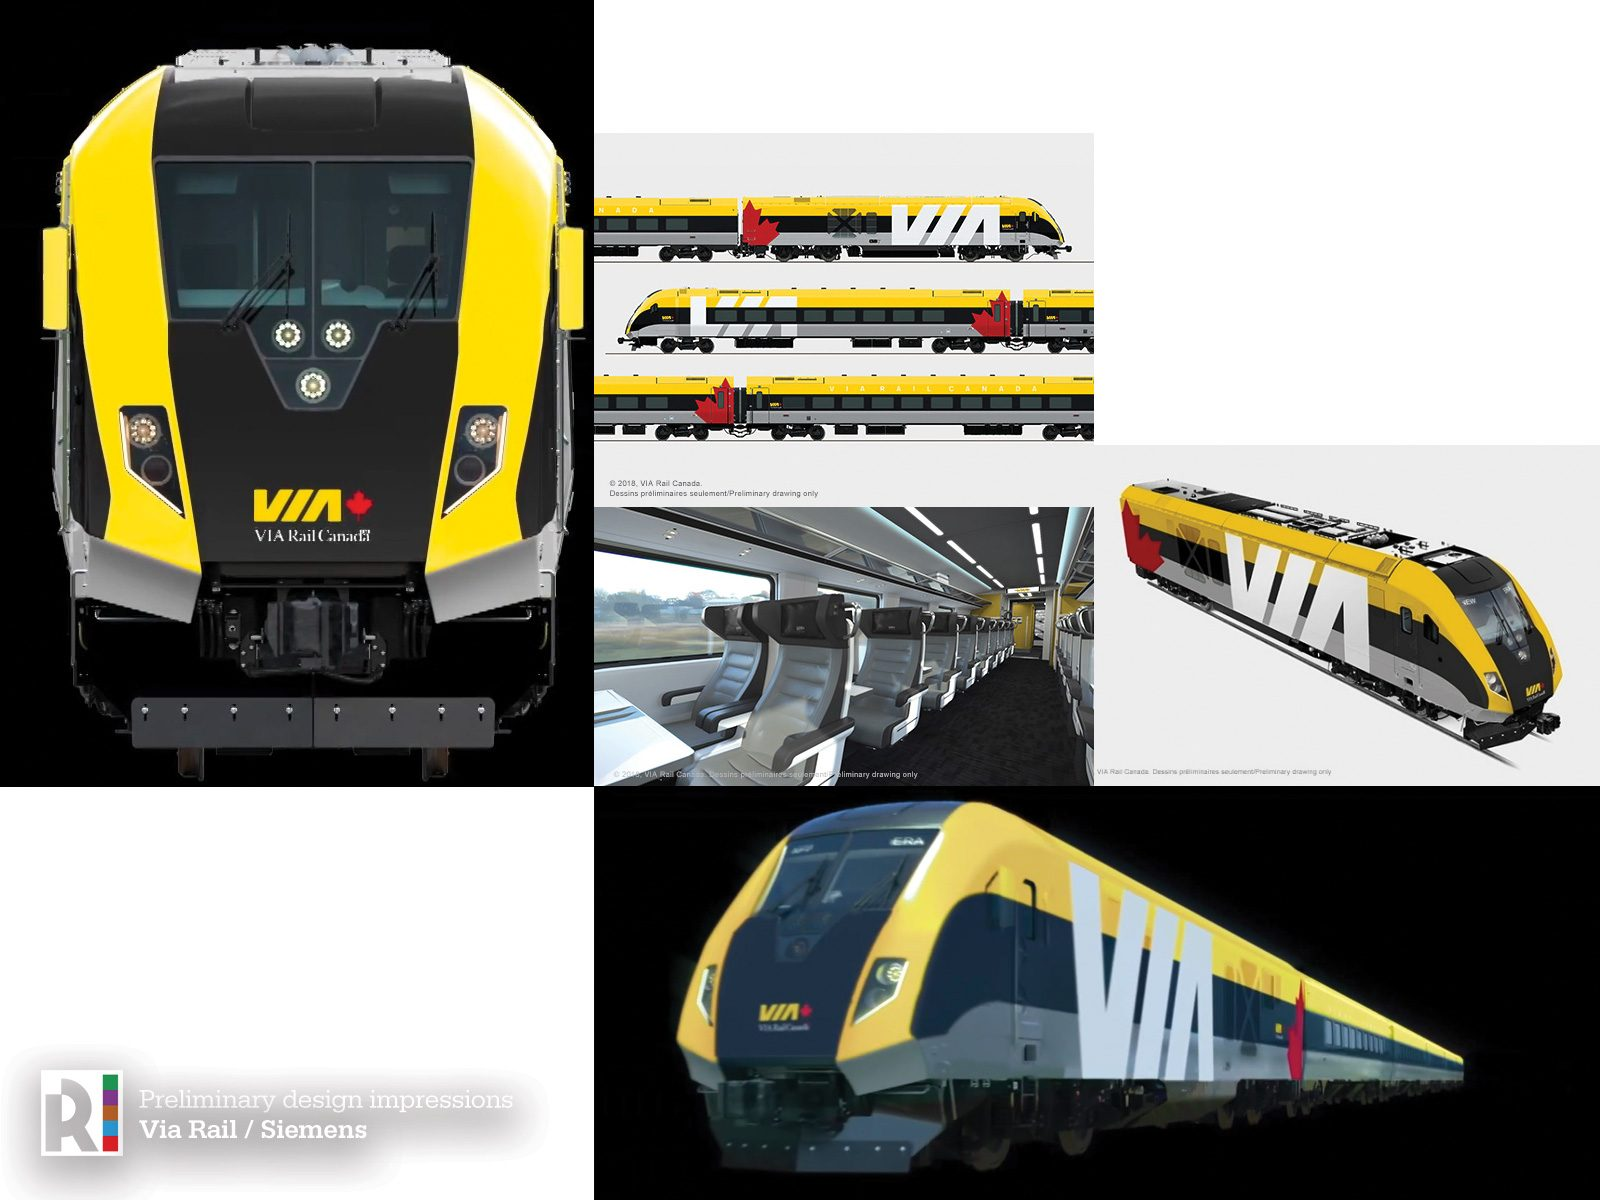 CA] VIA Rail Canada orders Charger locomotives and passenger